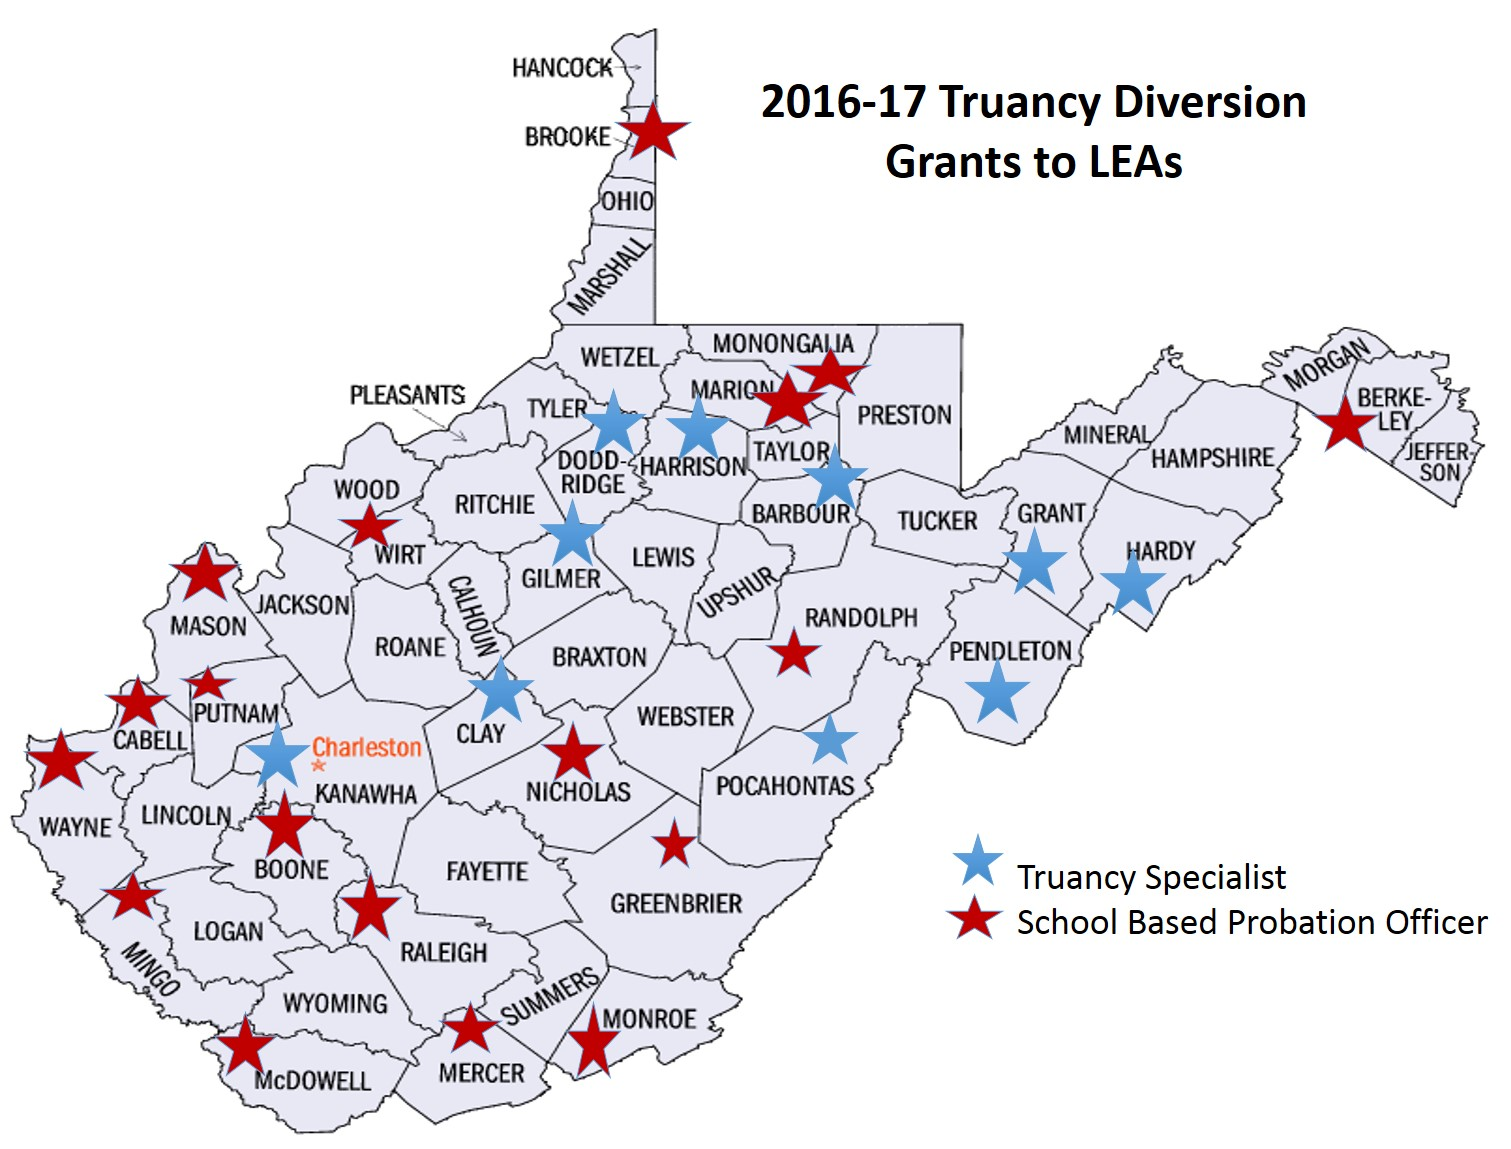 truancy diversion grants image